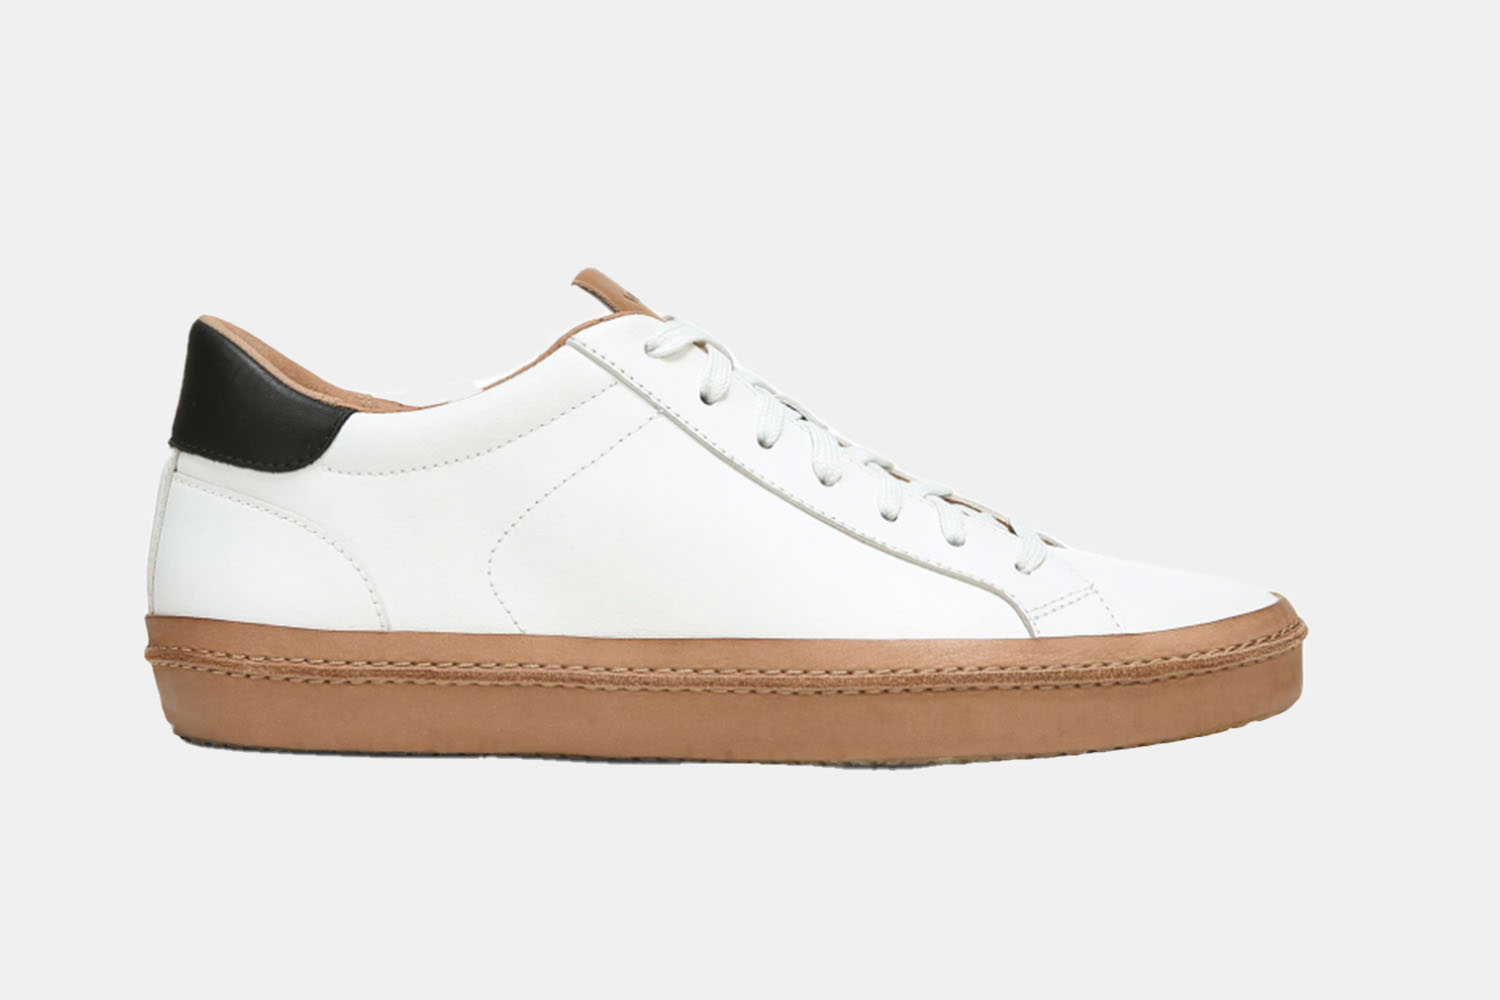 a white sneaker with a blue accent and gum sole.